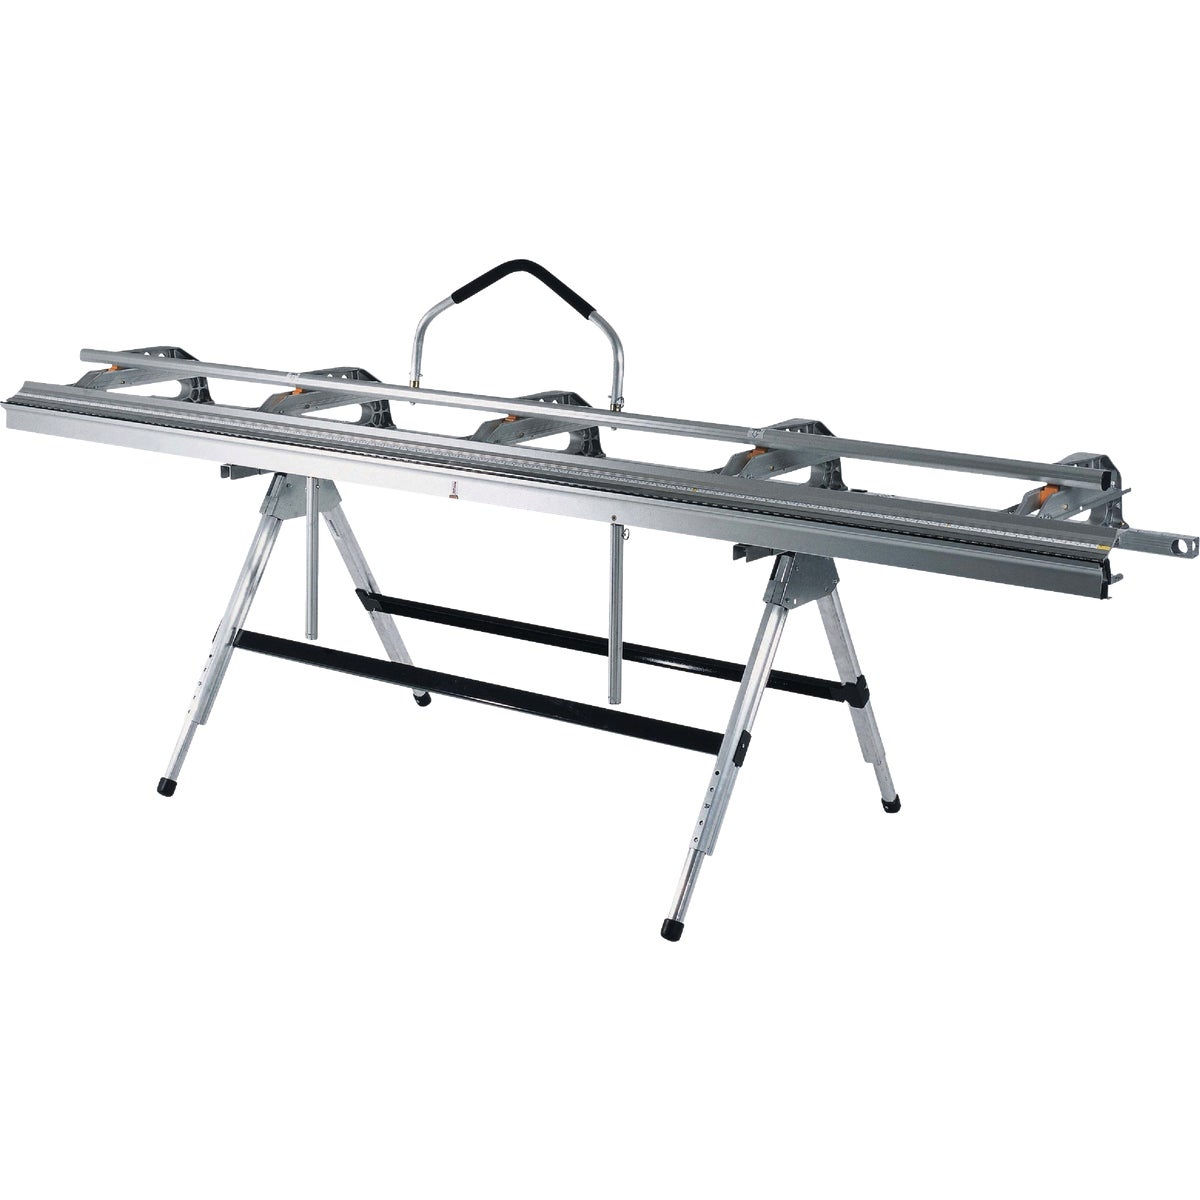 PRO14 BENDING BRAKE - 10567 by The Tapco Group